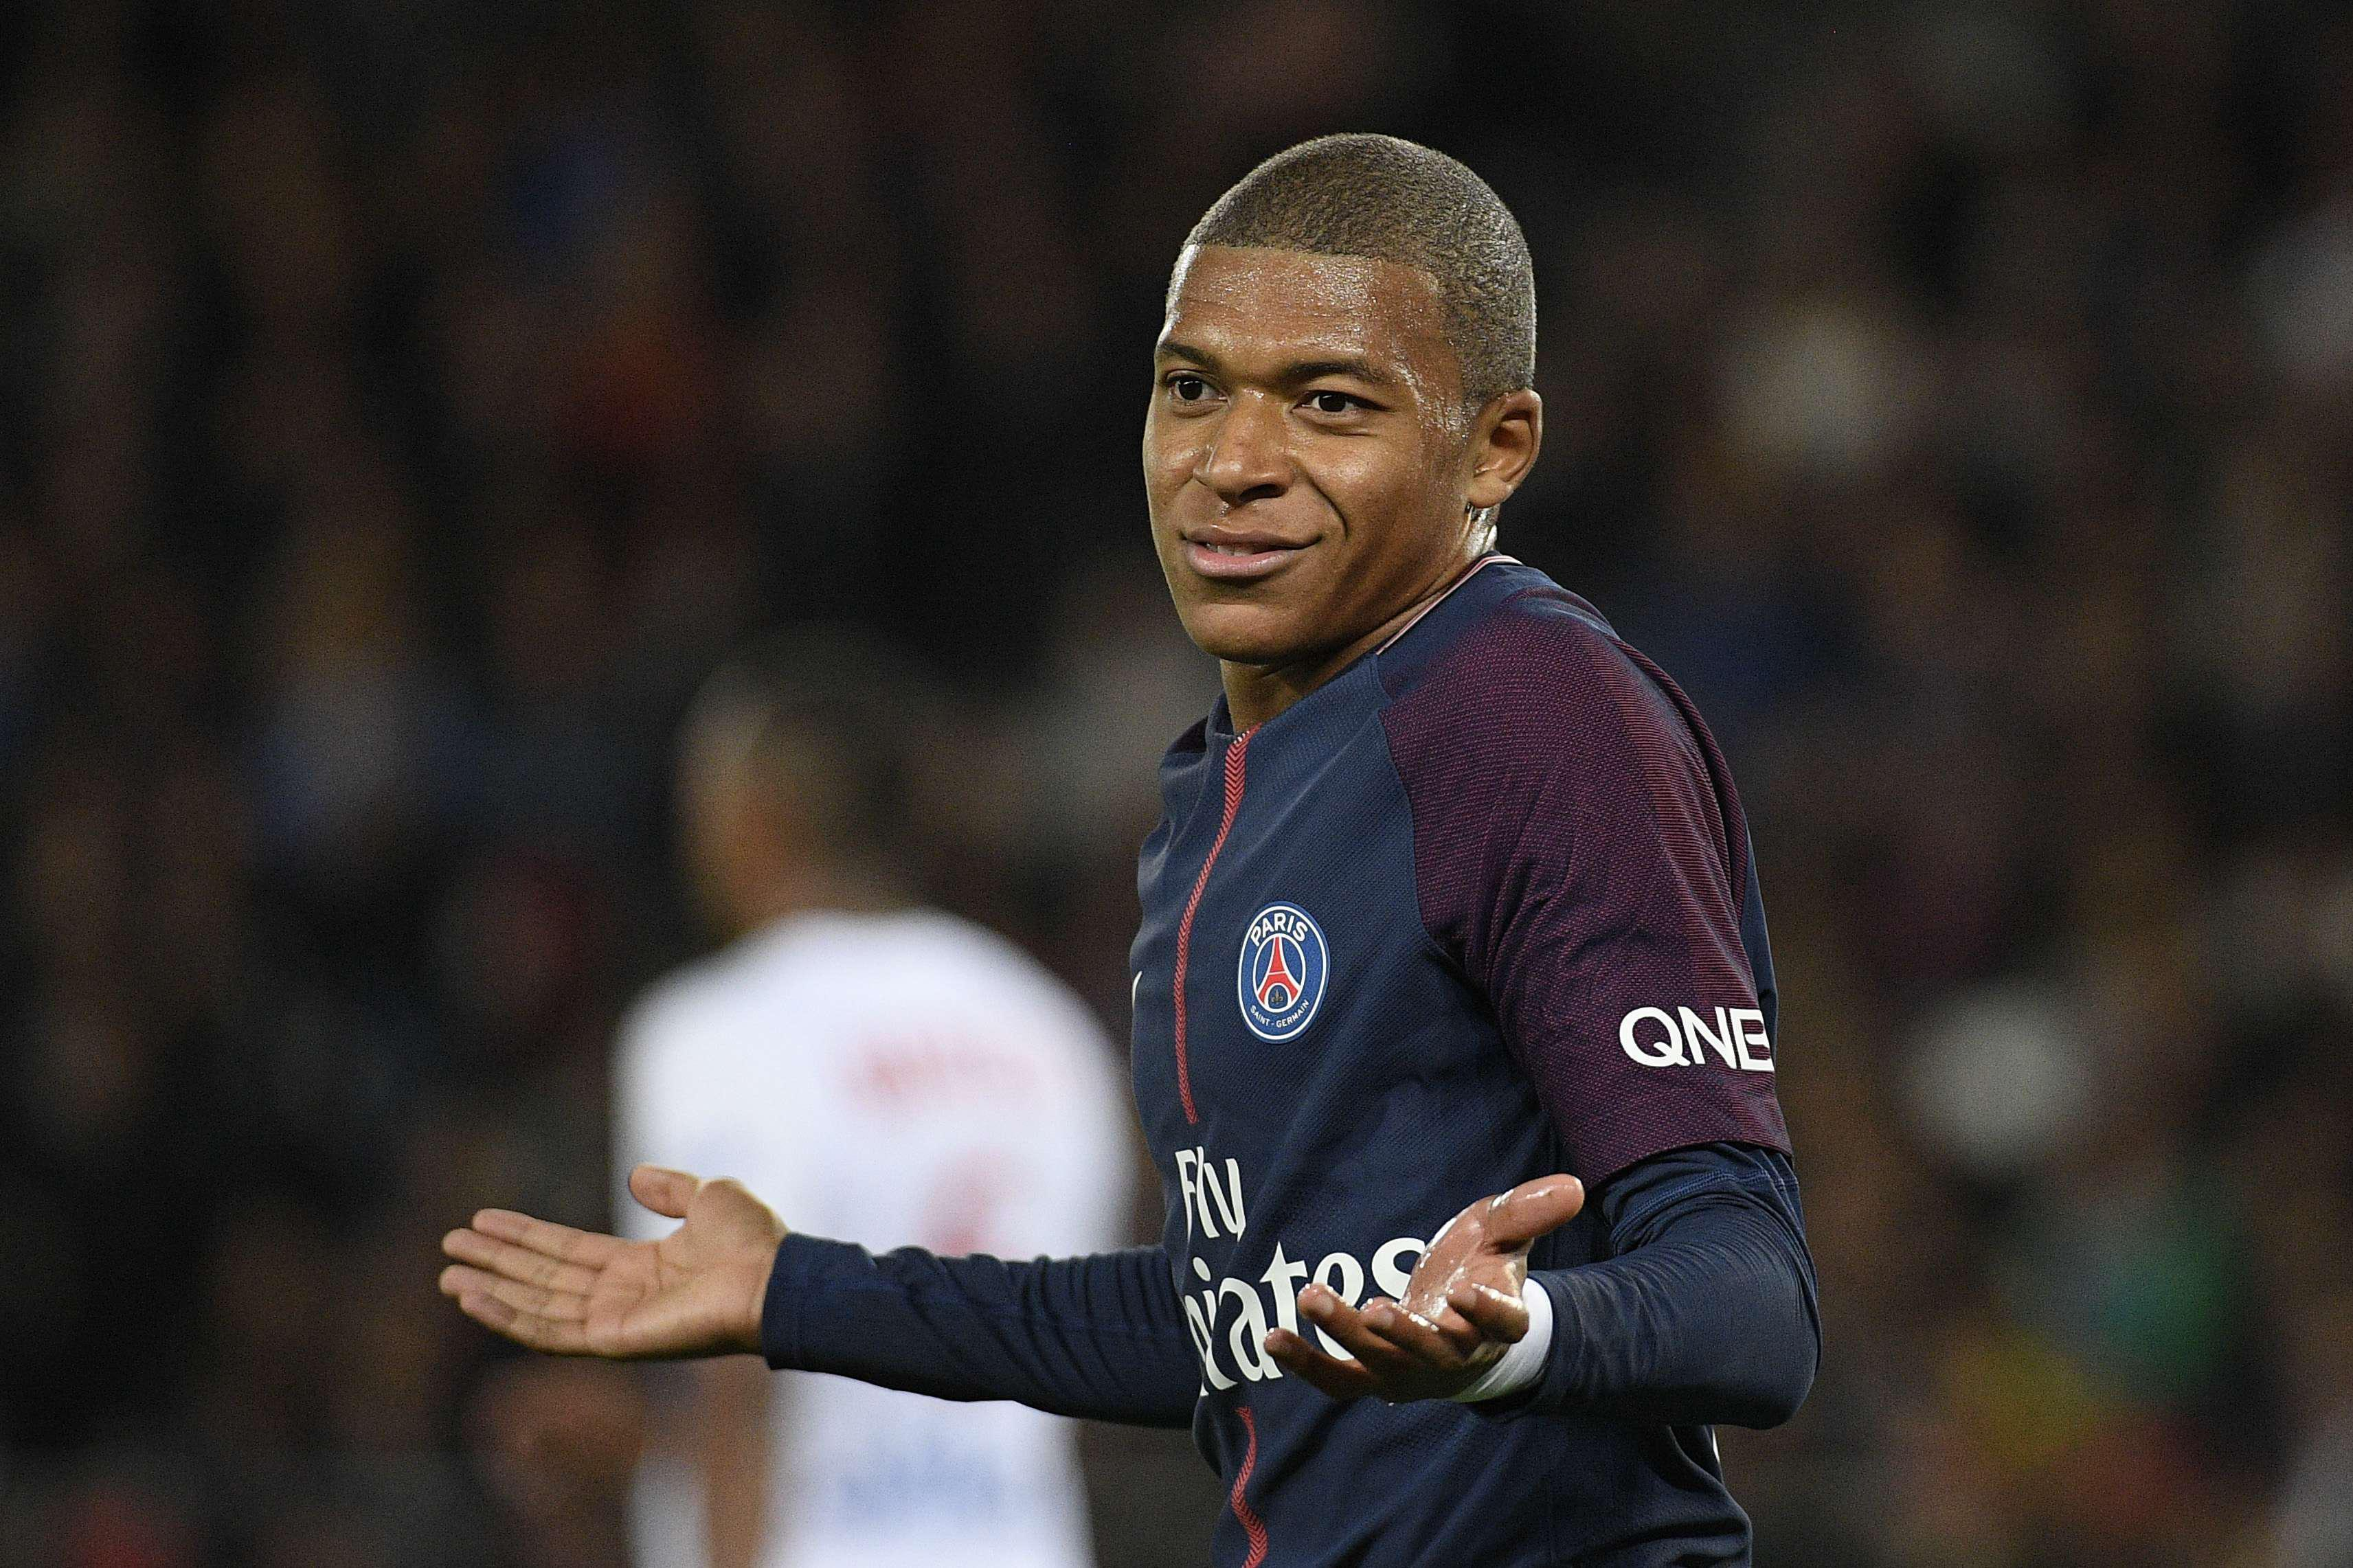 Kylian Mbappe became the world's most-expensive teenager when he left Monaco for PSG this summer